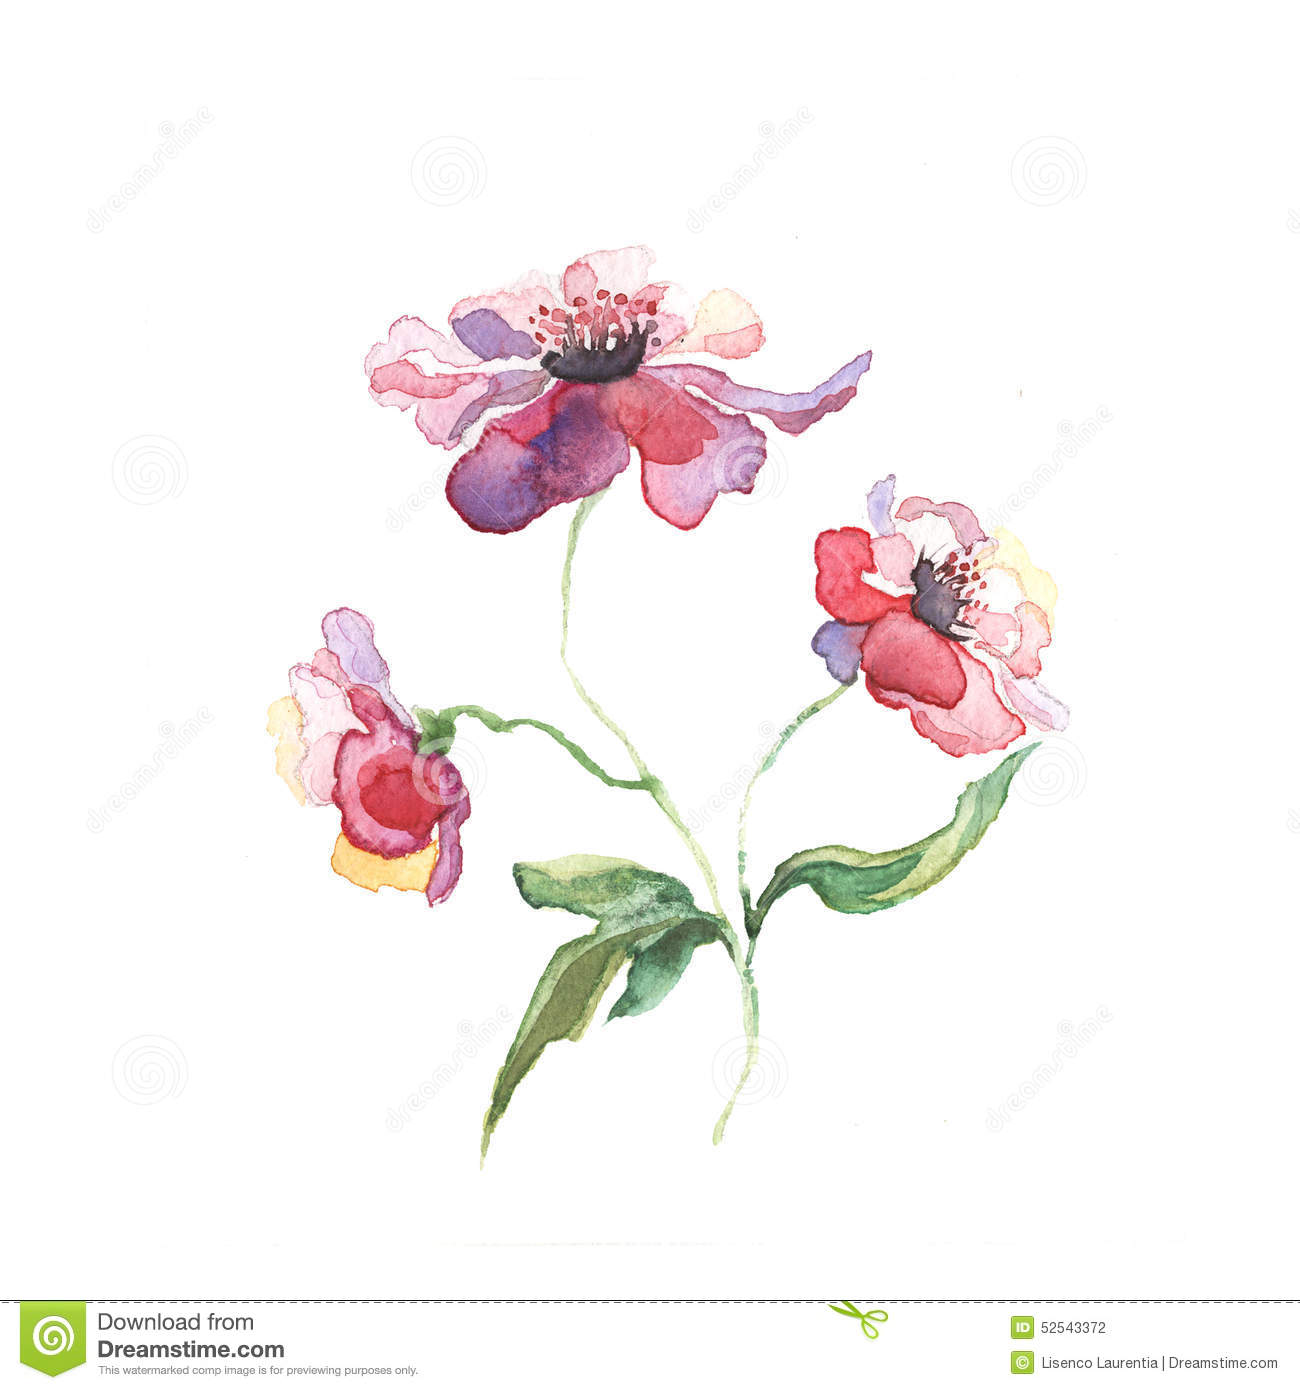 The spring flowers painting watercolor stock illustration for Spring flowers watercolor